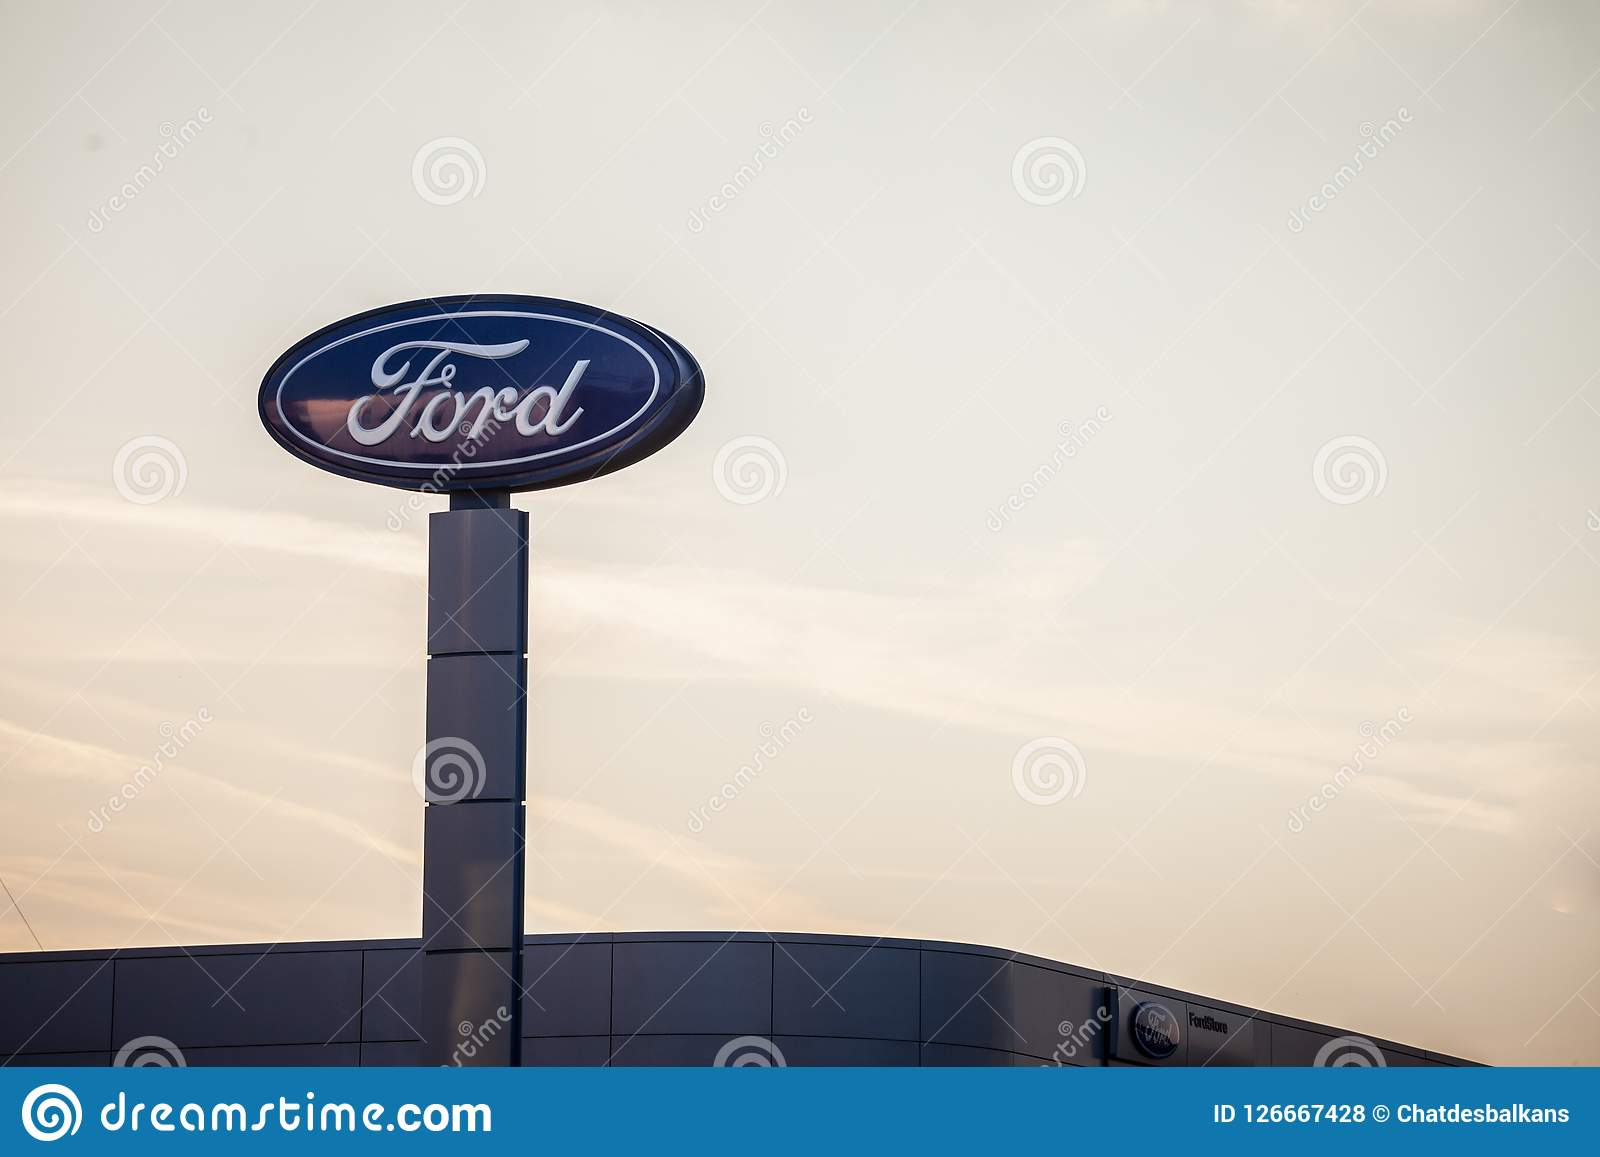 Ford Logo On Their Main Dealership Store Belgrade Ford Is An